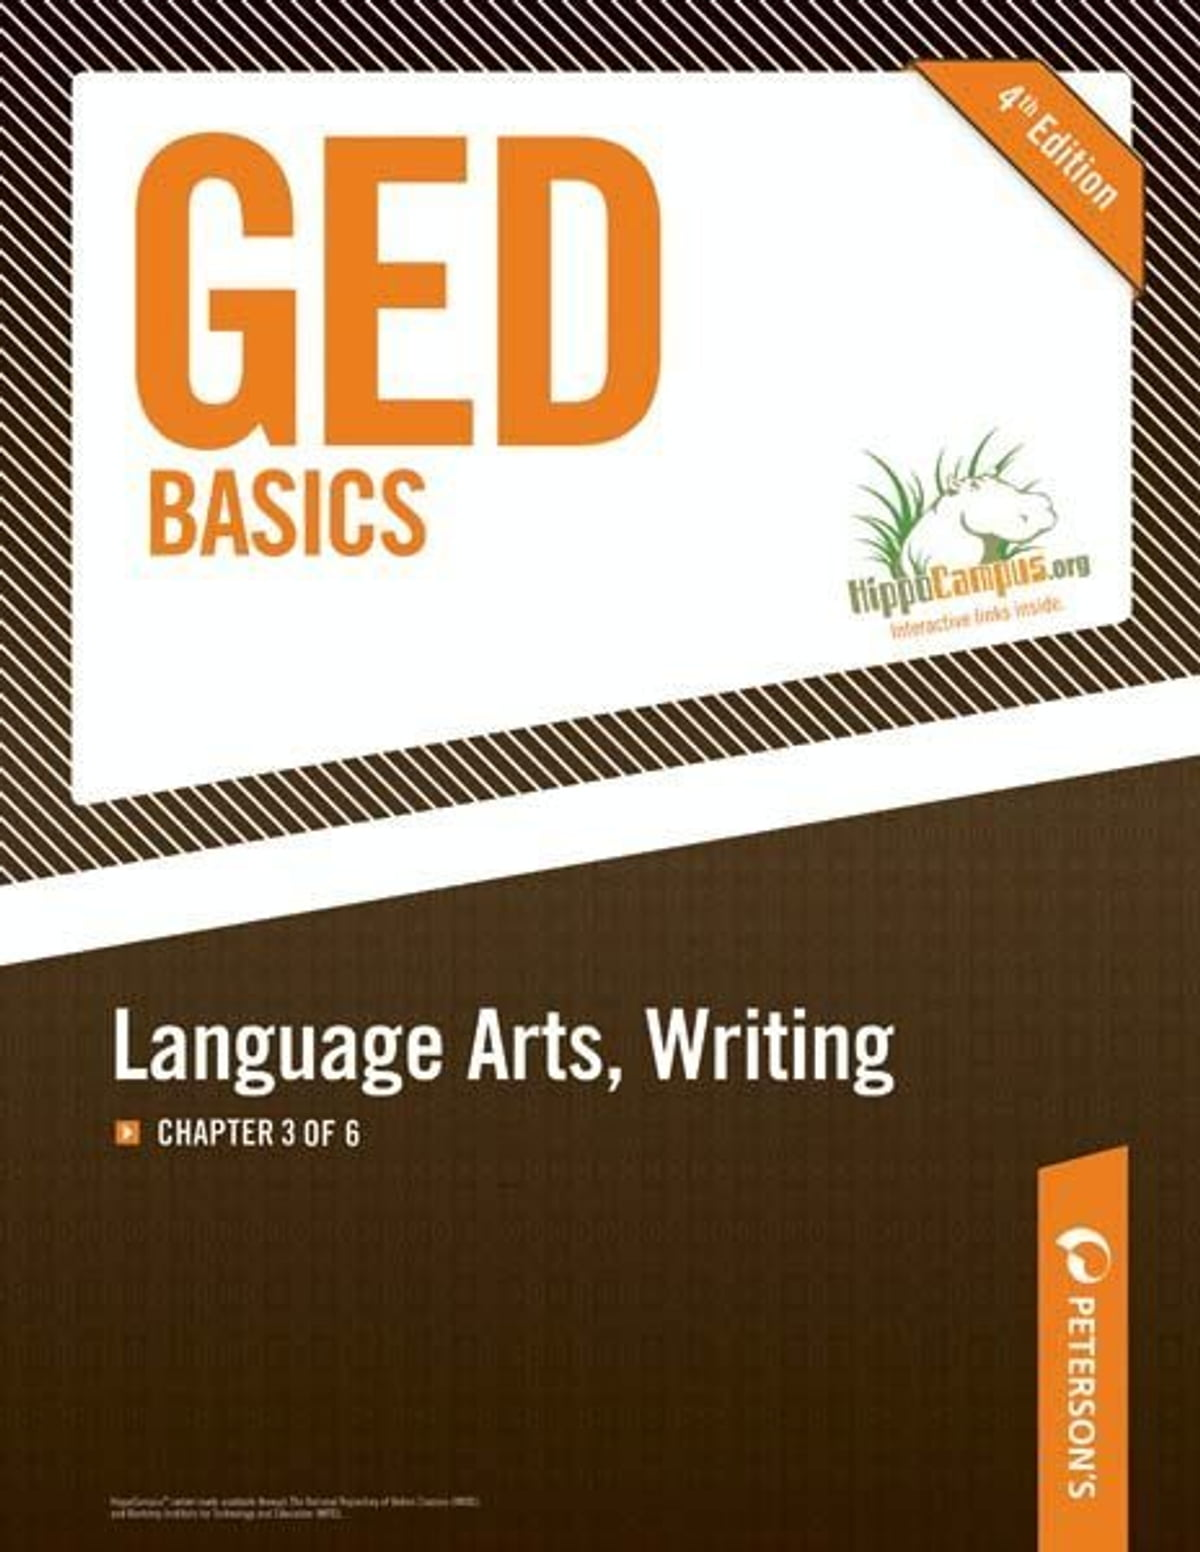 Ged Basics Language Arts Writing Chapter 3 Of 6 Ebook By Peterson S